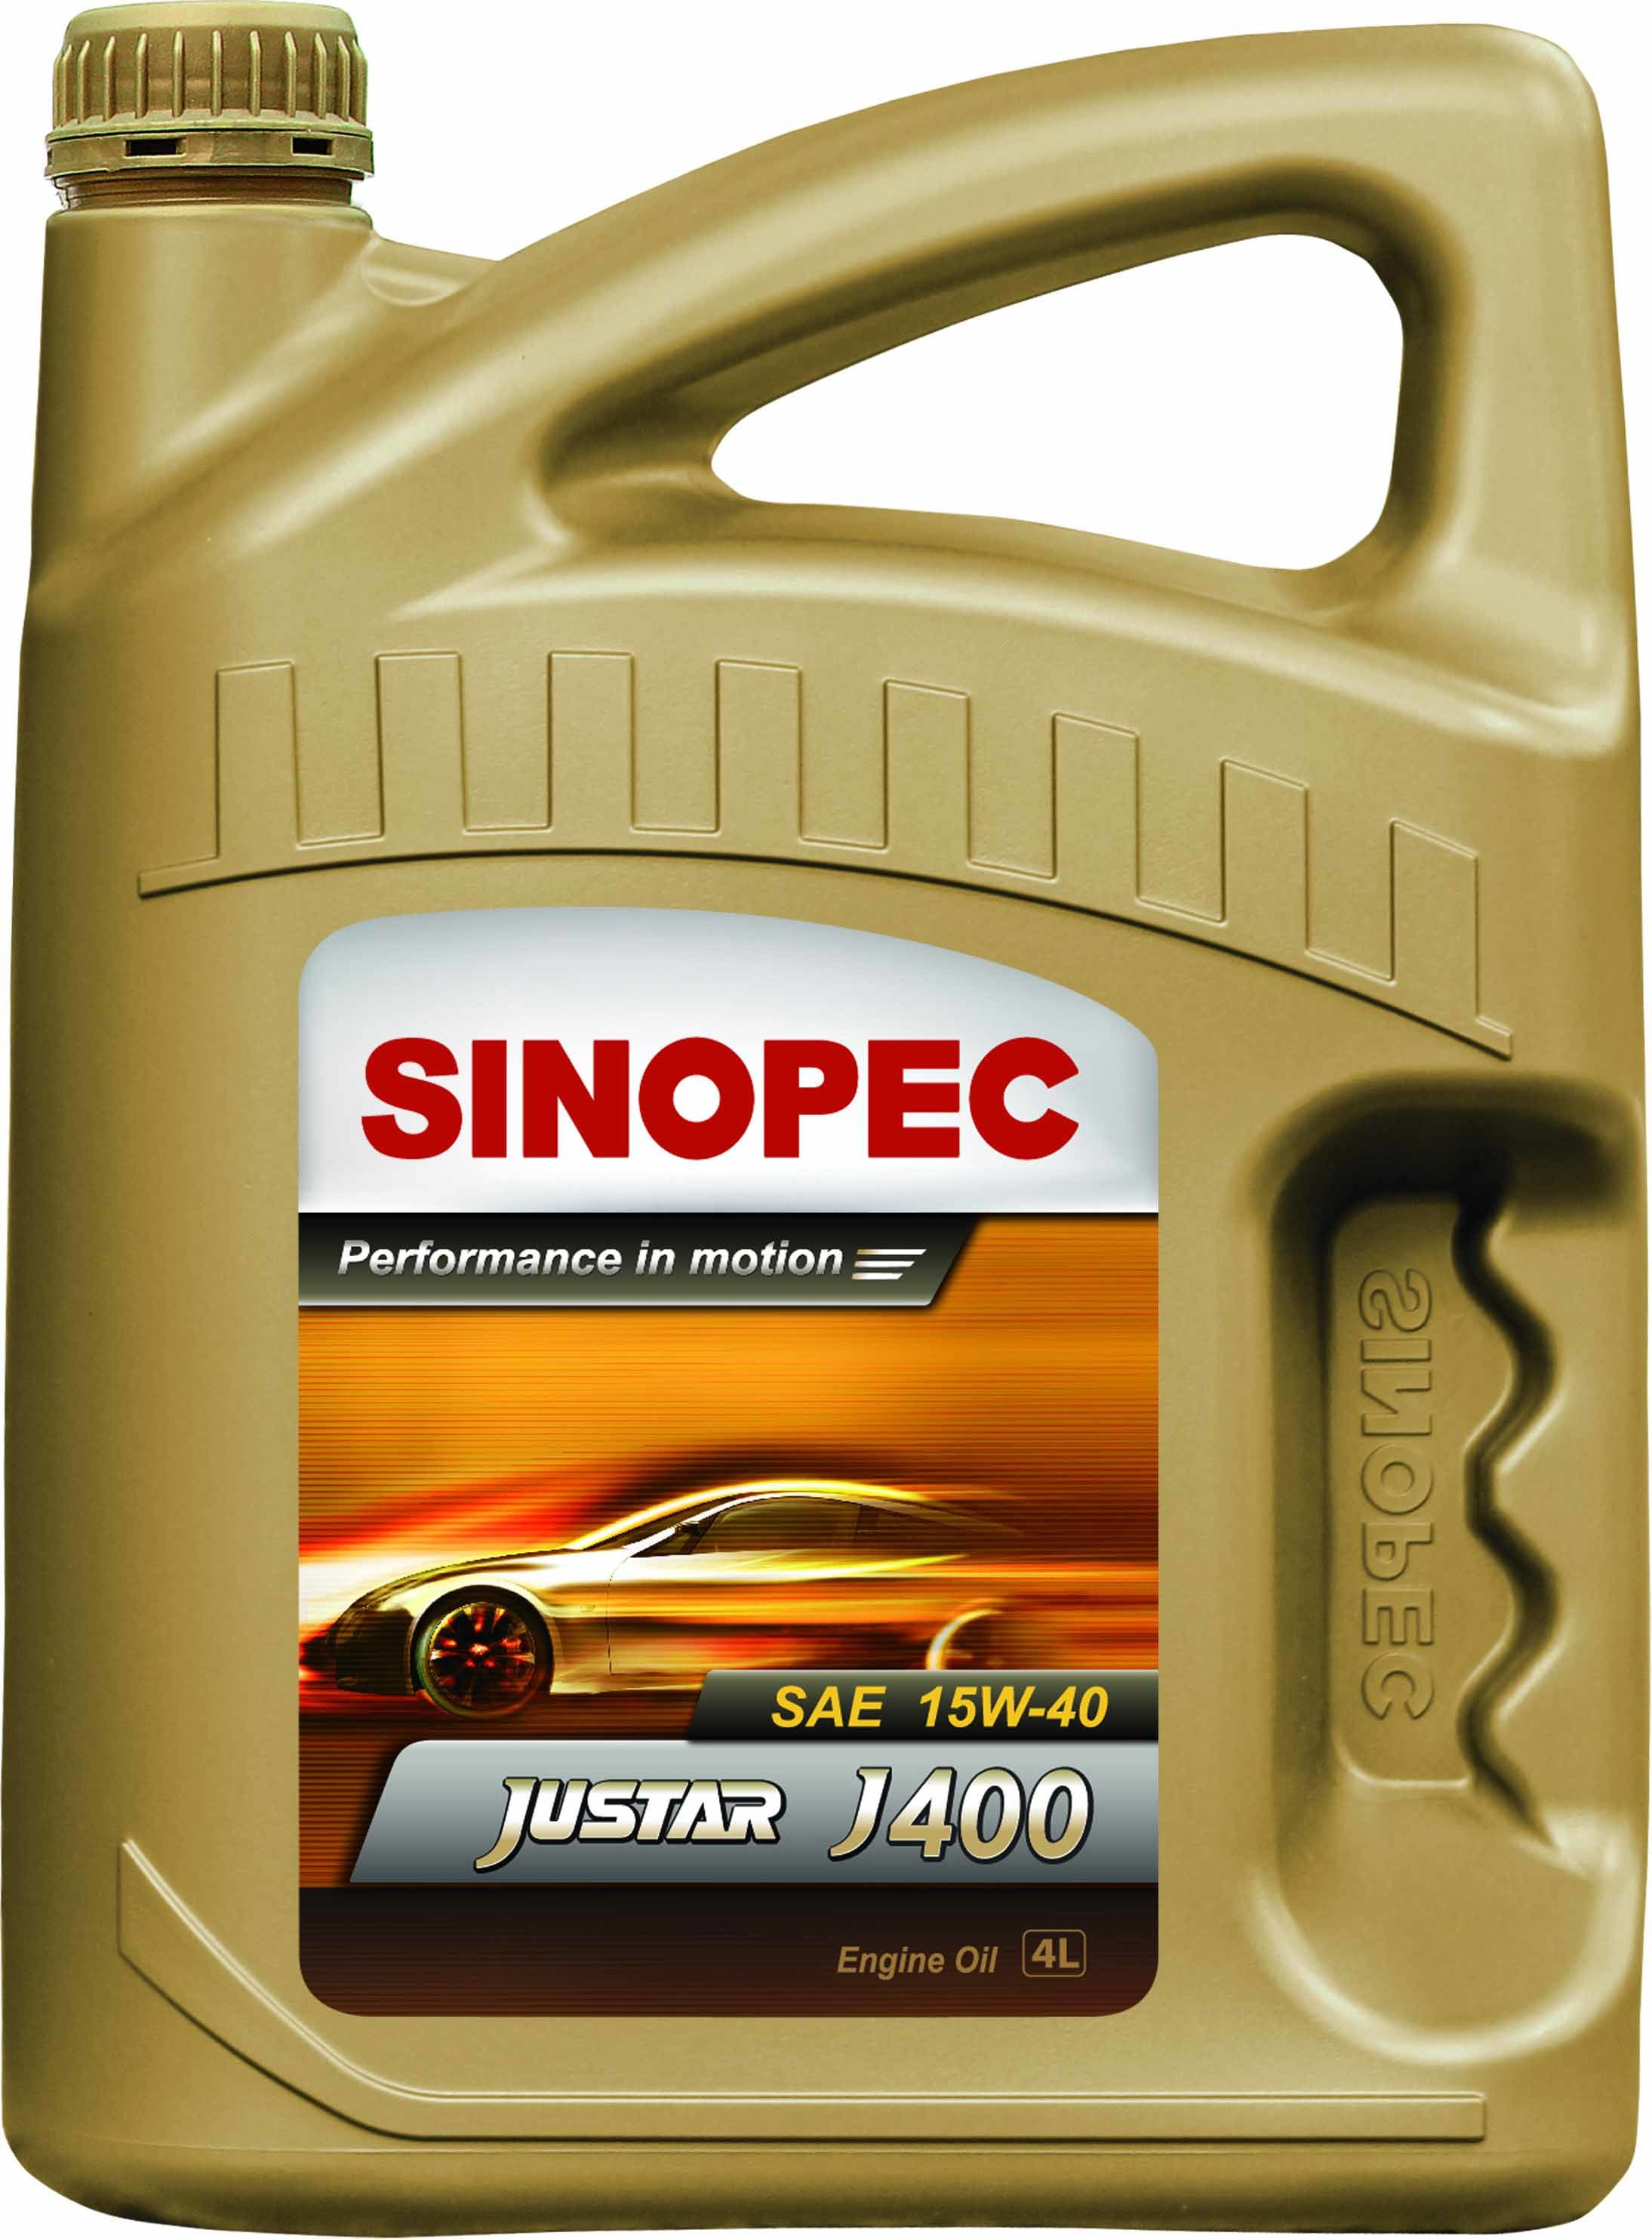 China sinopec sj gasoline engine oil photos pictures for How is motor oil made